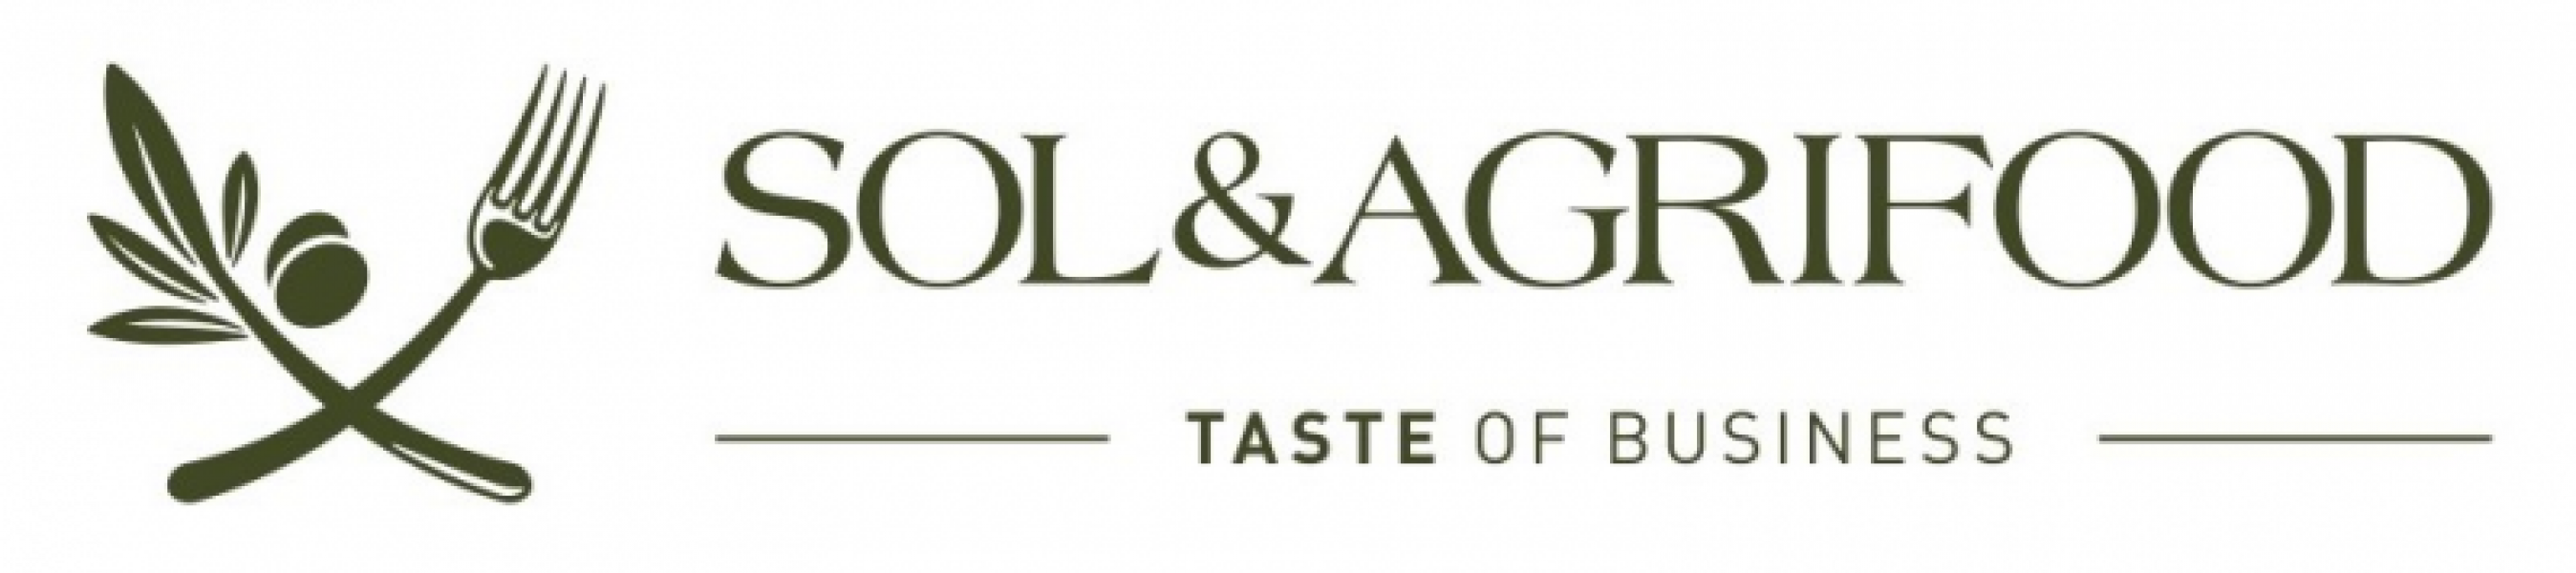 Logotipo de Sol&Agri Food